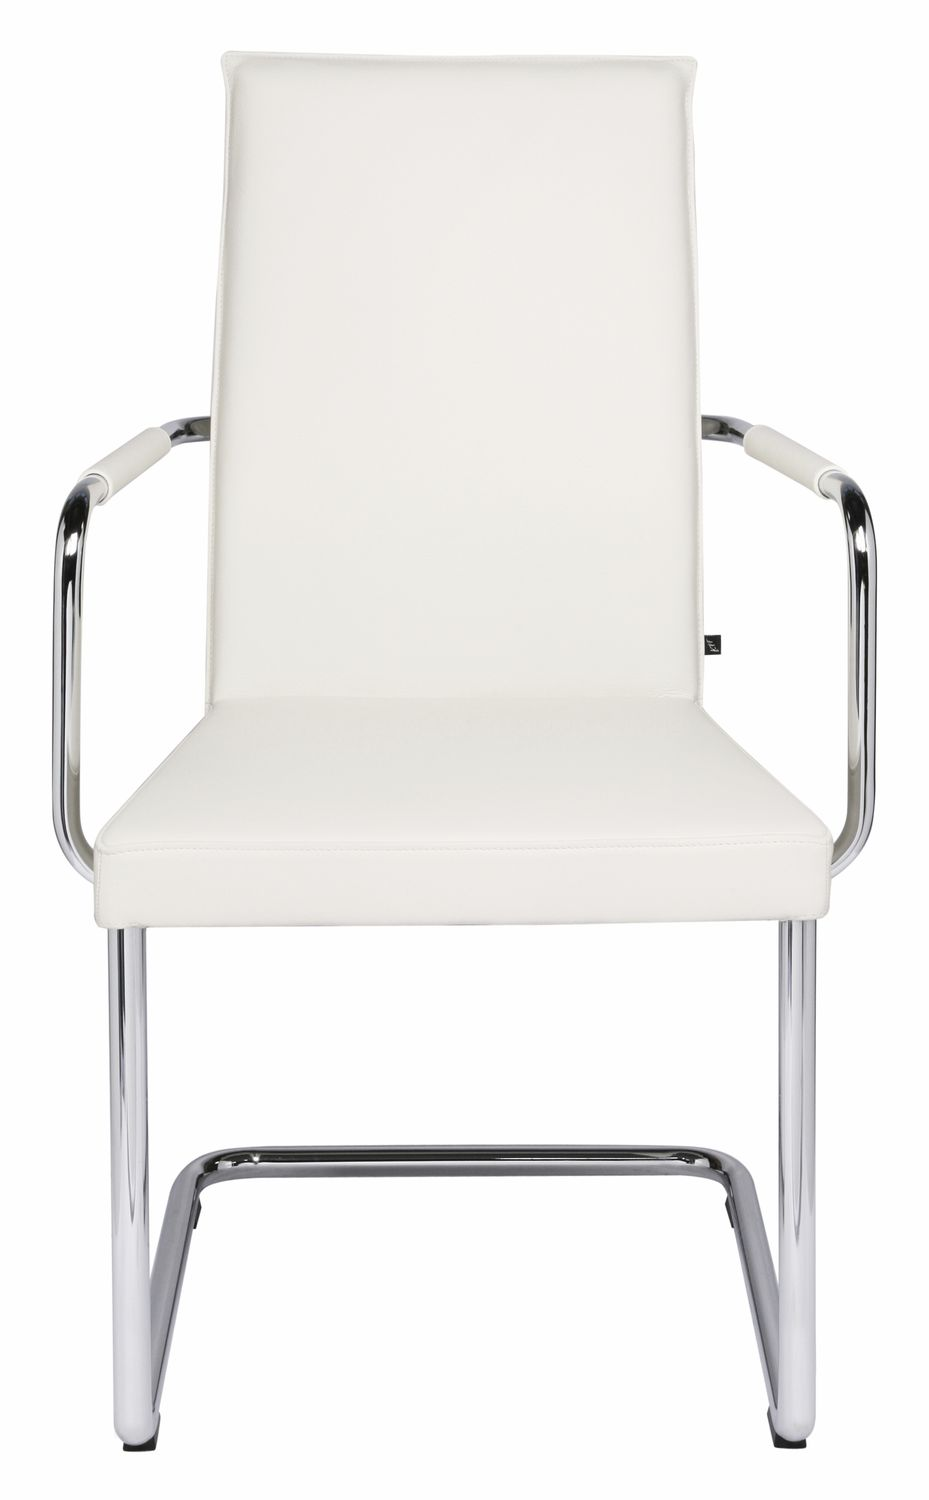 Kff Mexico Contemporary Visitor Chair Upholstered With Armrests